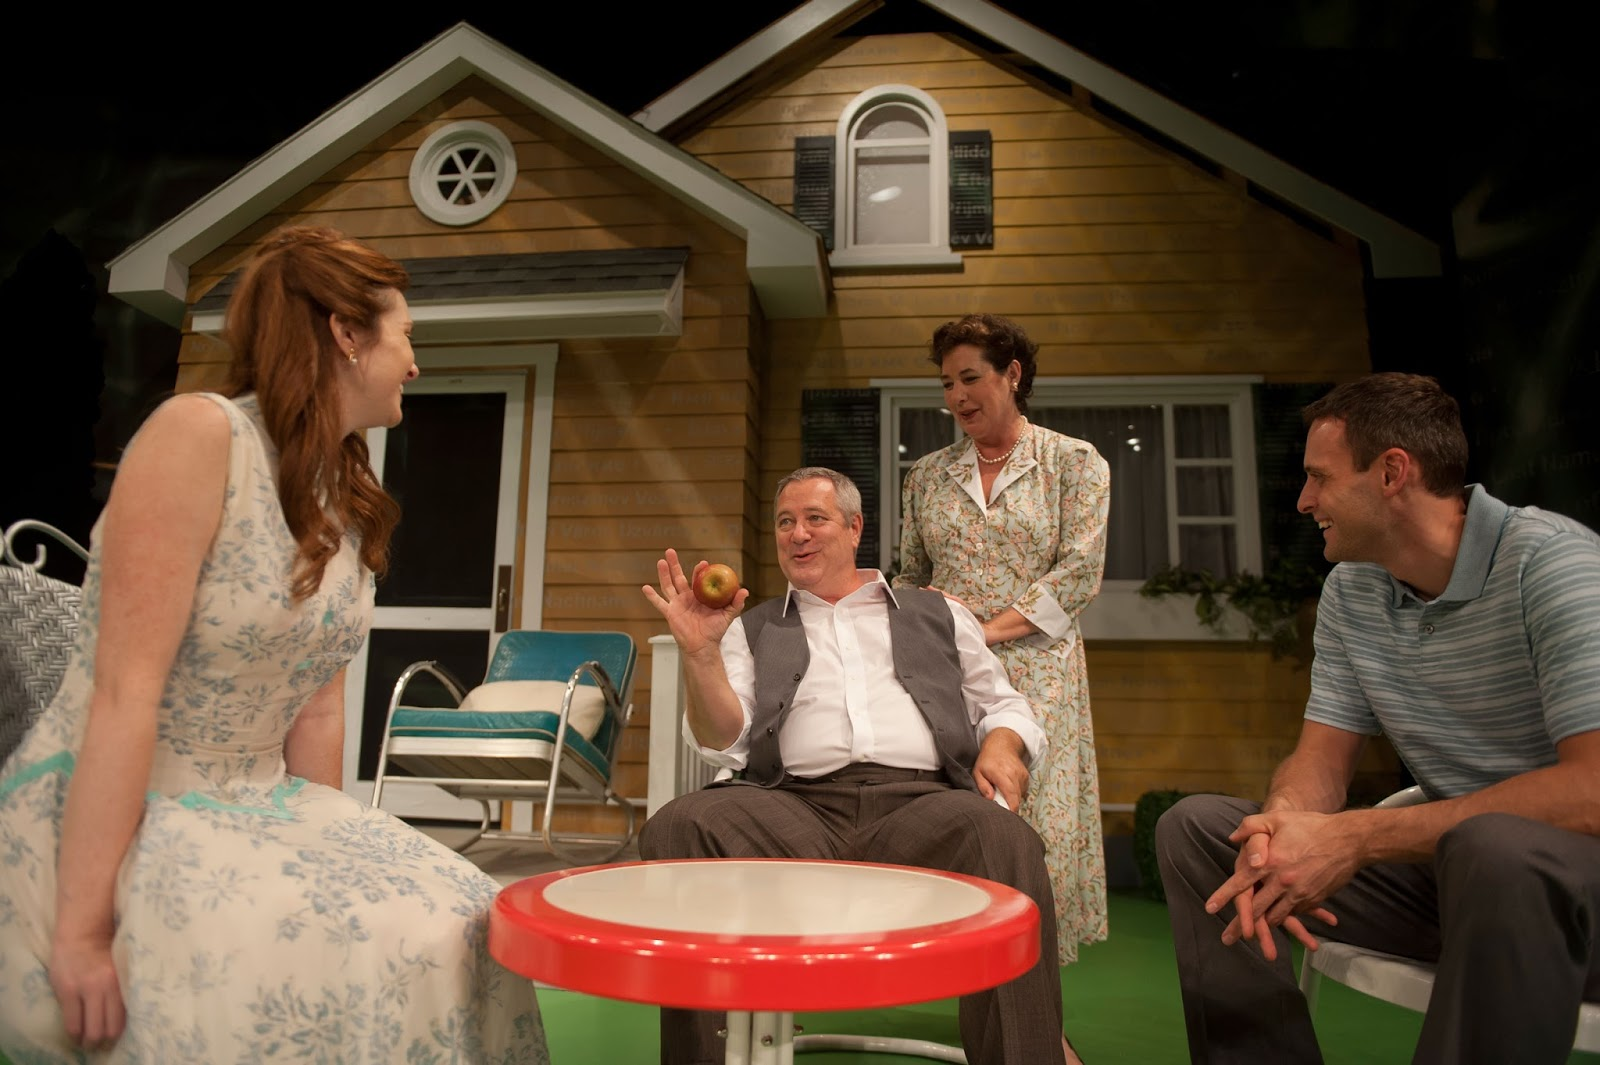 rovingpittsburgher arthur miller s all my sons still resonates  all my sons daina michelle griffith philip winters penelope lindblom shaun cameron hall photo jeff swensen 2013